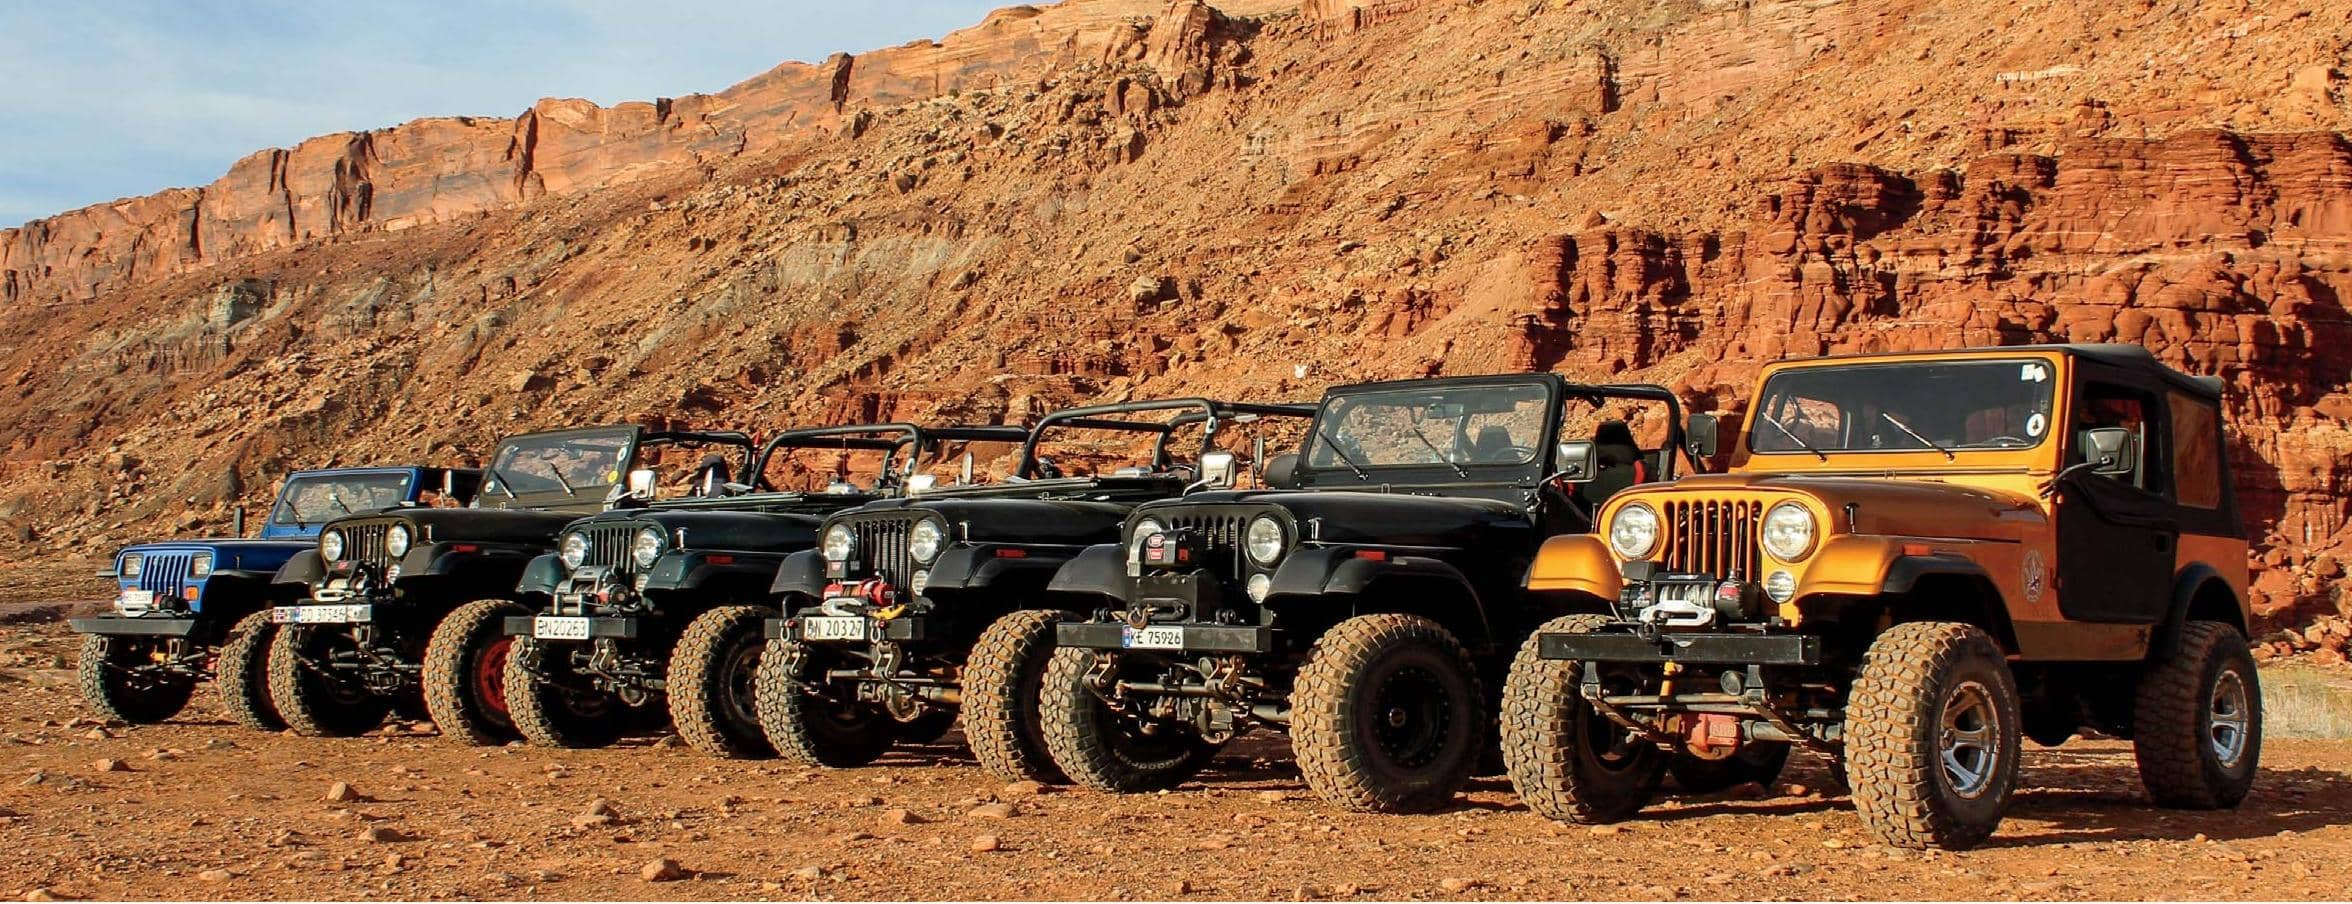 THE IMPOSSIBLE JEEP TOUR